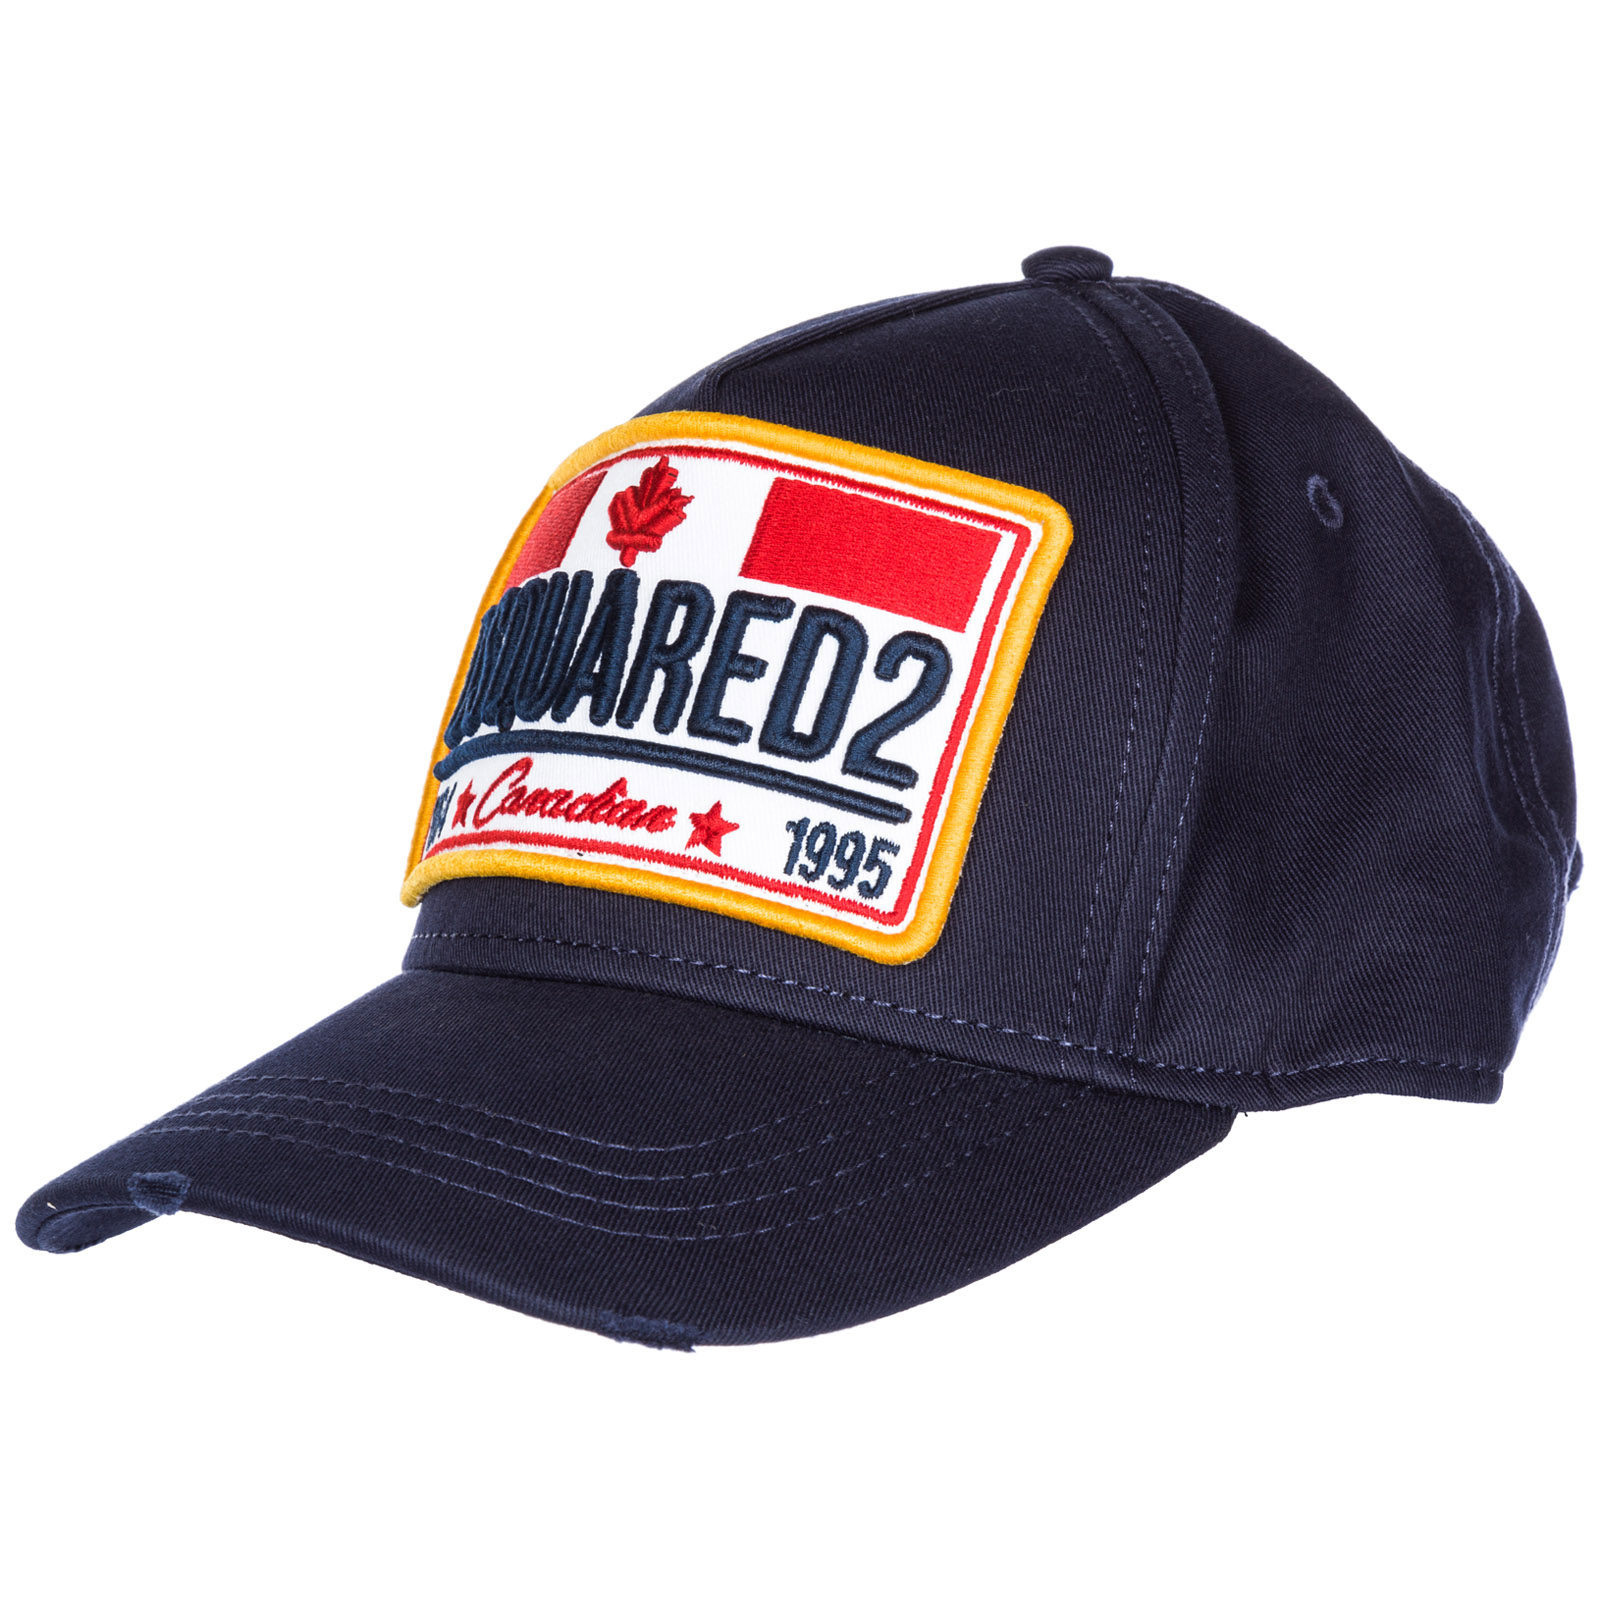 137c4914130 Casquette baseball Dsquared2 Canadian Patch BCM013505C000013073 navy ...